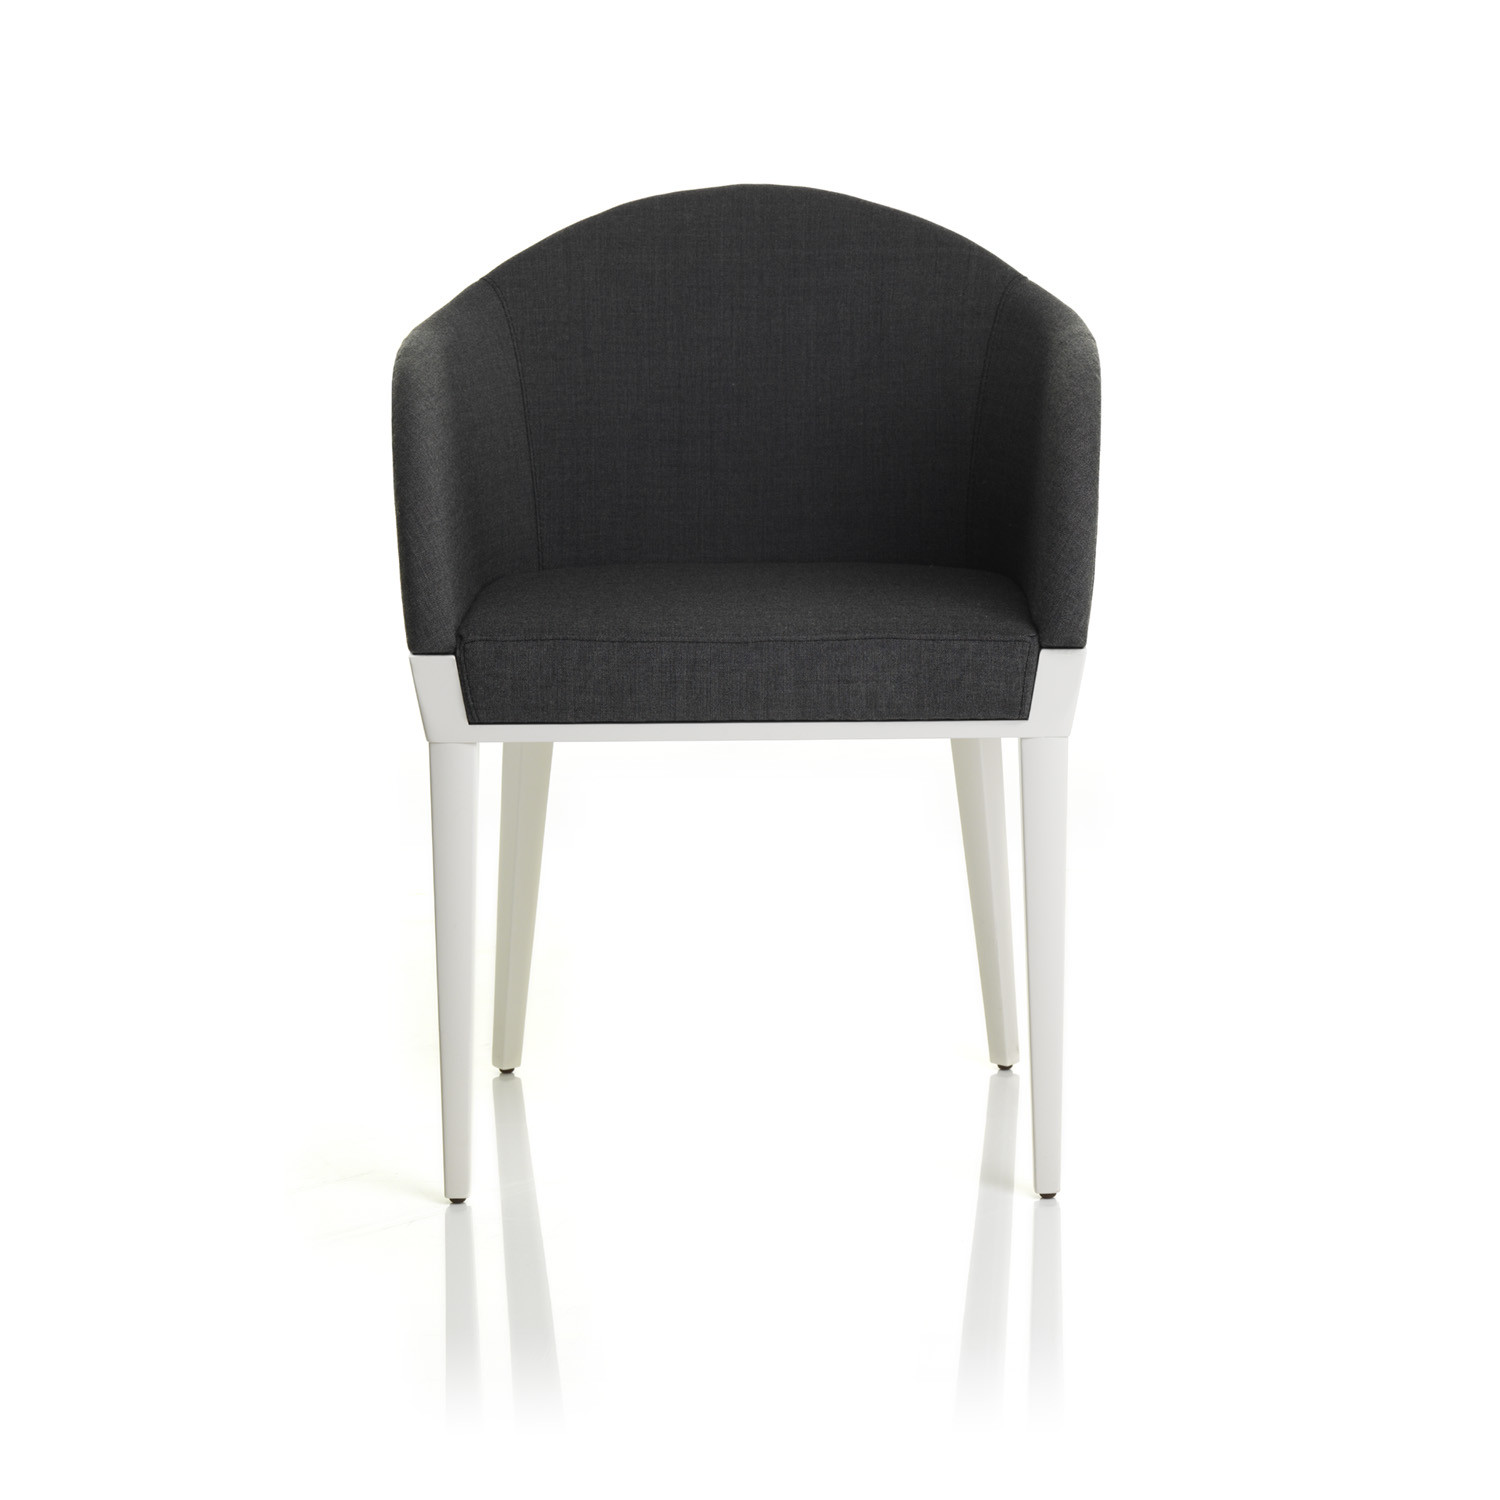 Agata Reception Chair